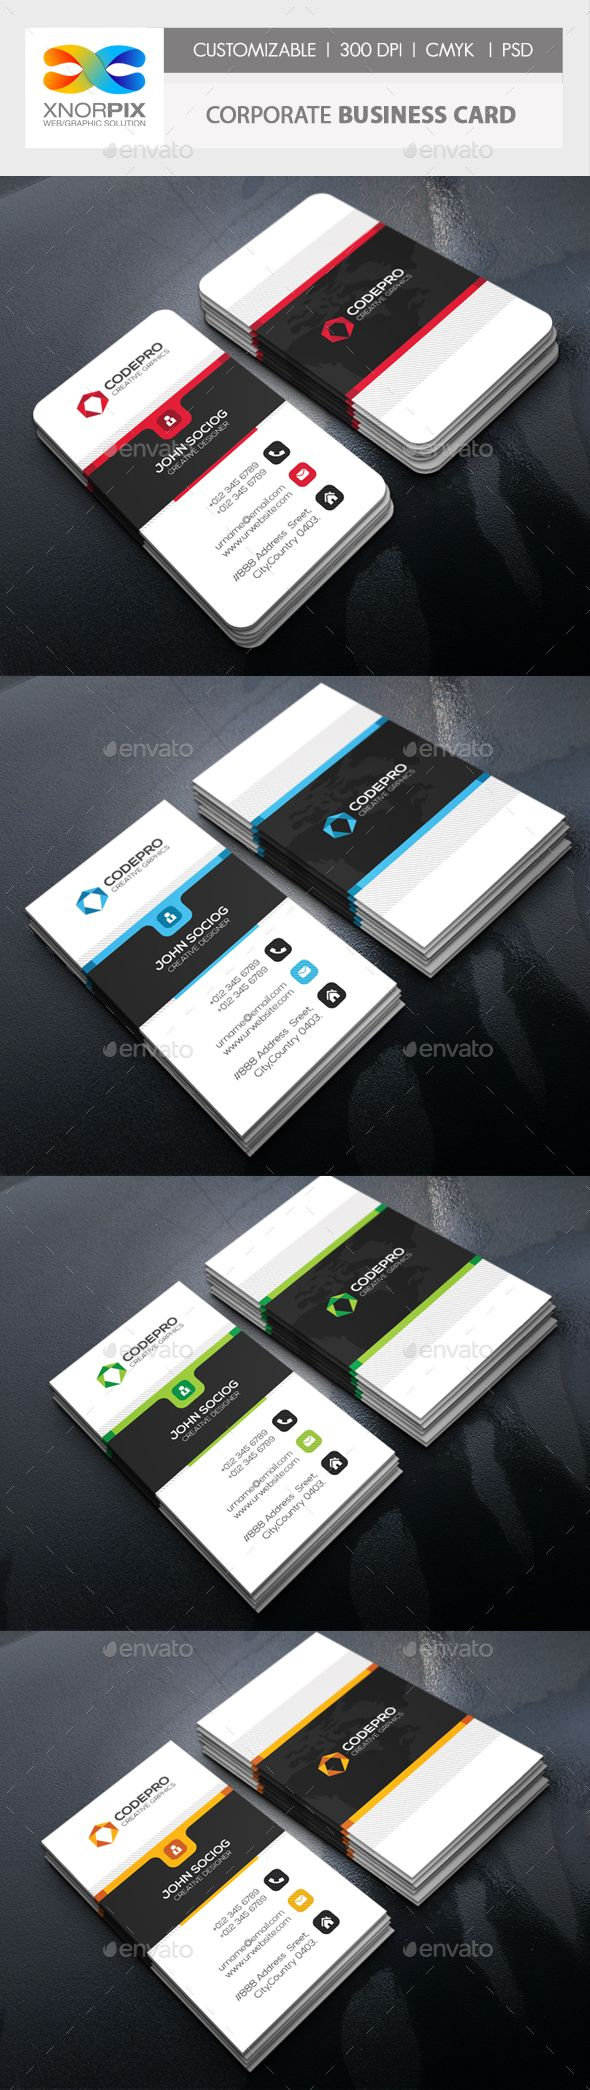 17 Best Attorney And Lawyer Business Cards Images On Pinterest